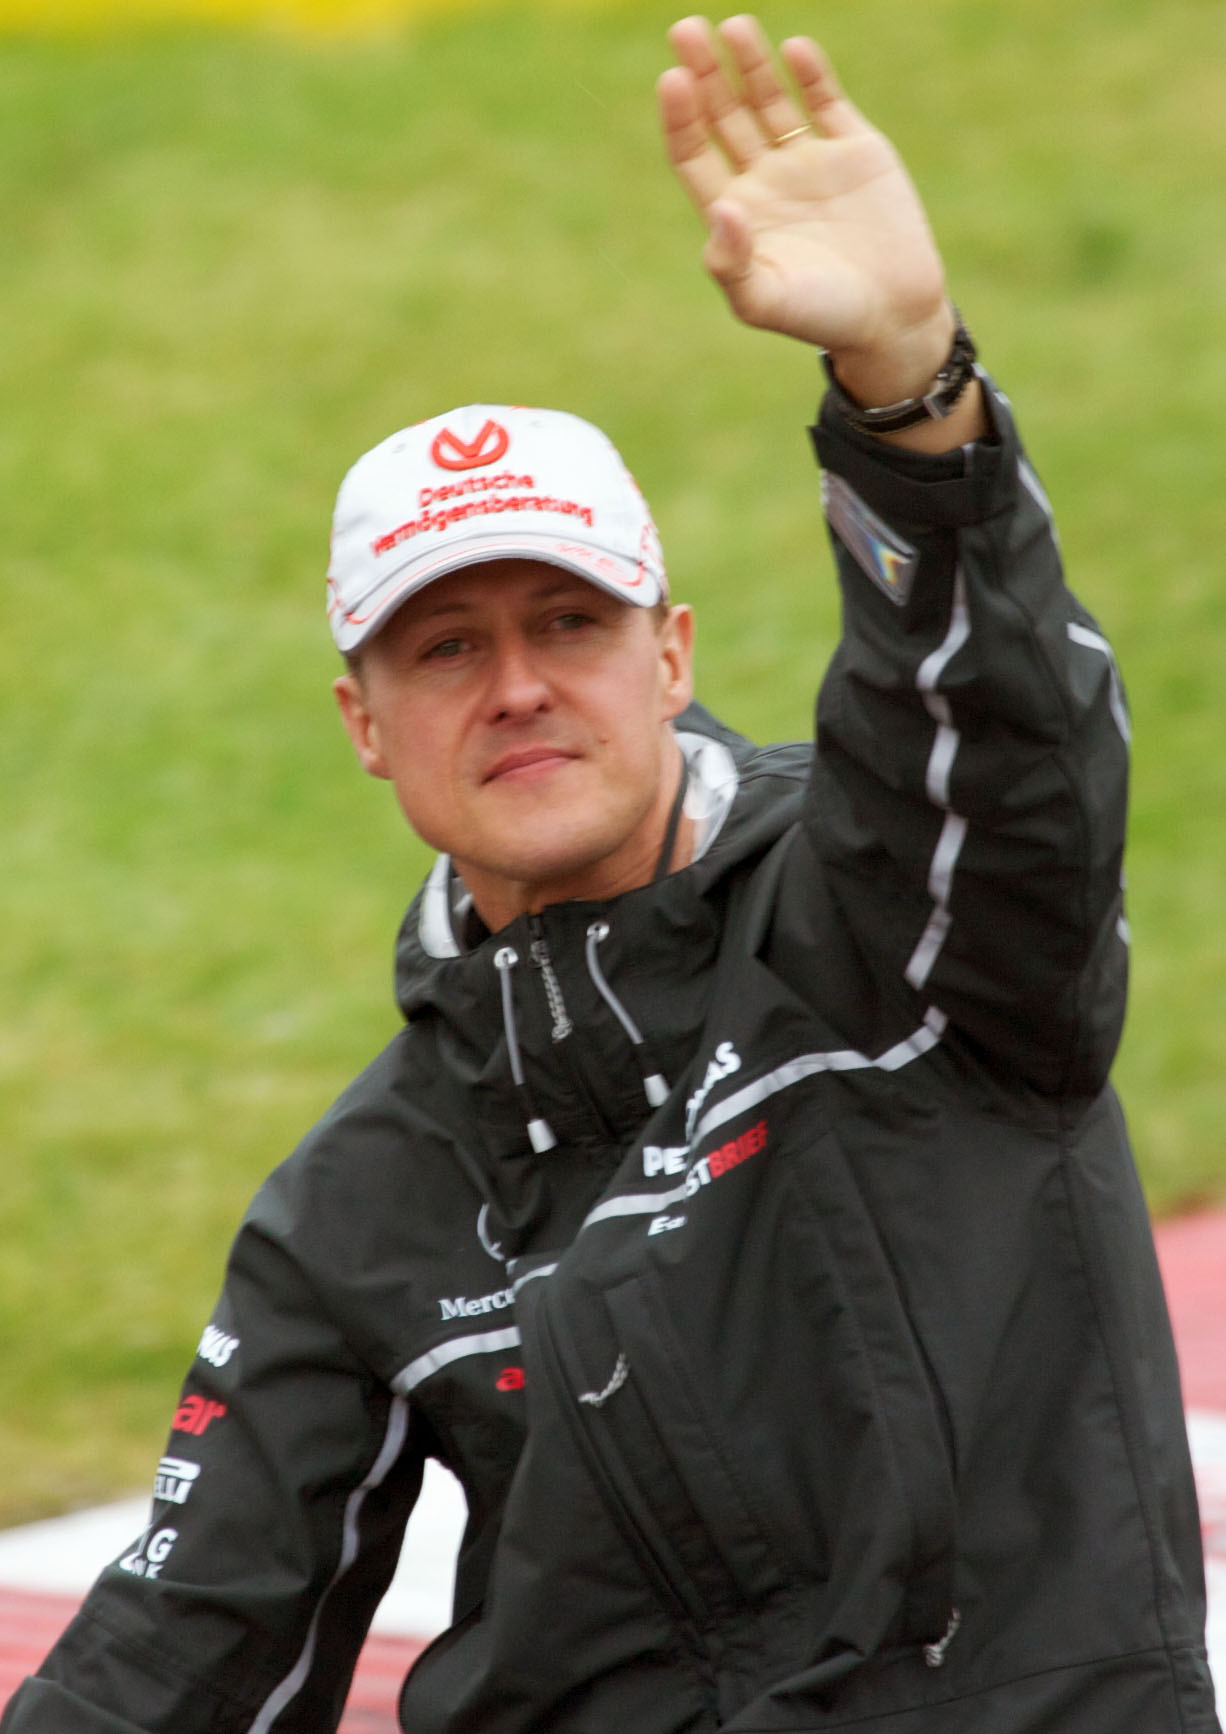 Photo of Michael Schumacher